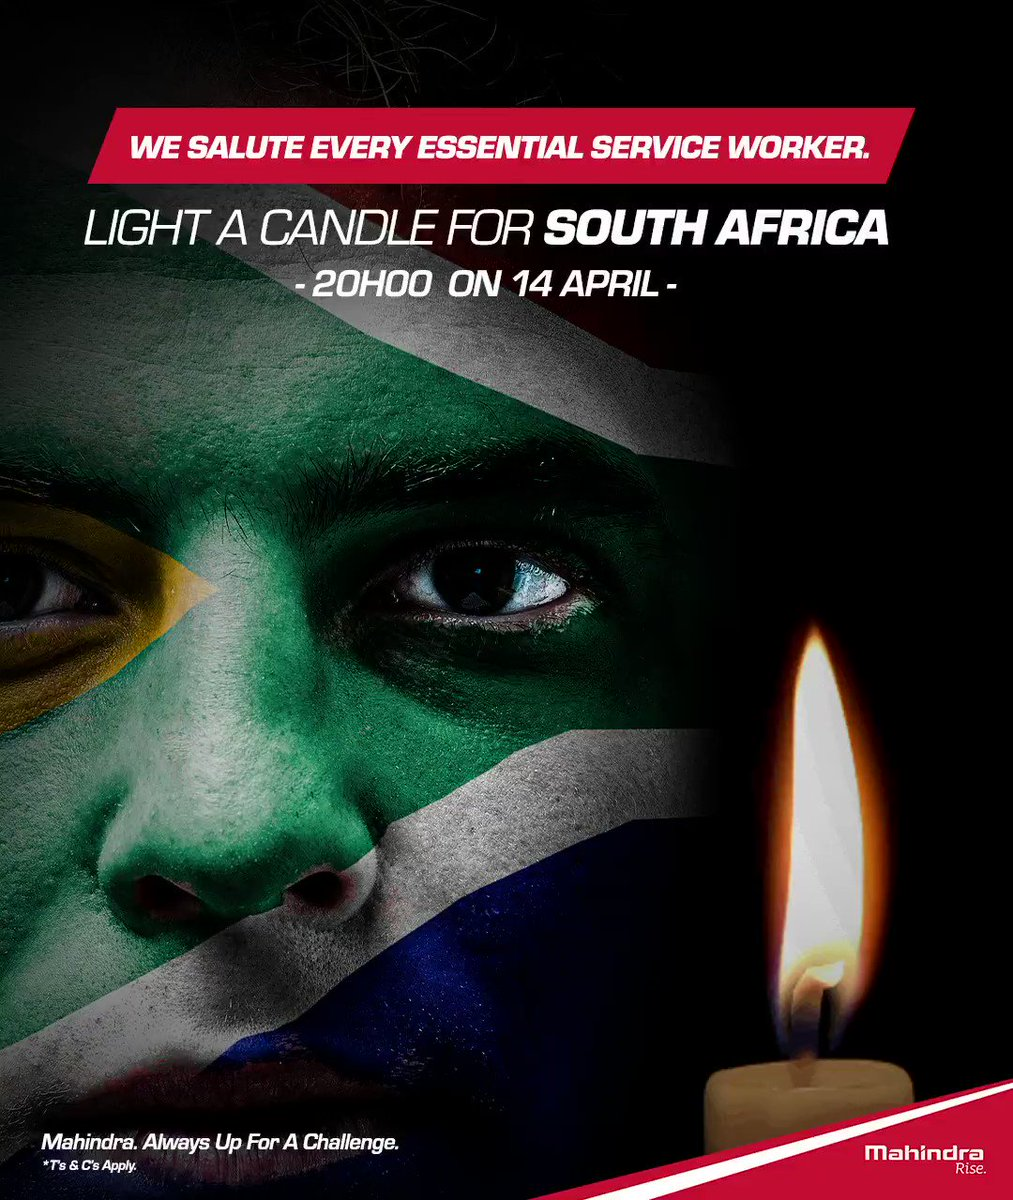 The candle is a symbol of hope. It drives out darkness and instills light in the lives of South Africa. The heroes @Mahindra_SA  wants to salute resemble hope and what a candle means at this time. Just like candles, they burn themselves up to give others light.🕯️#WithYouAlways